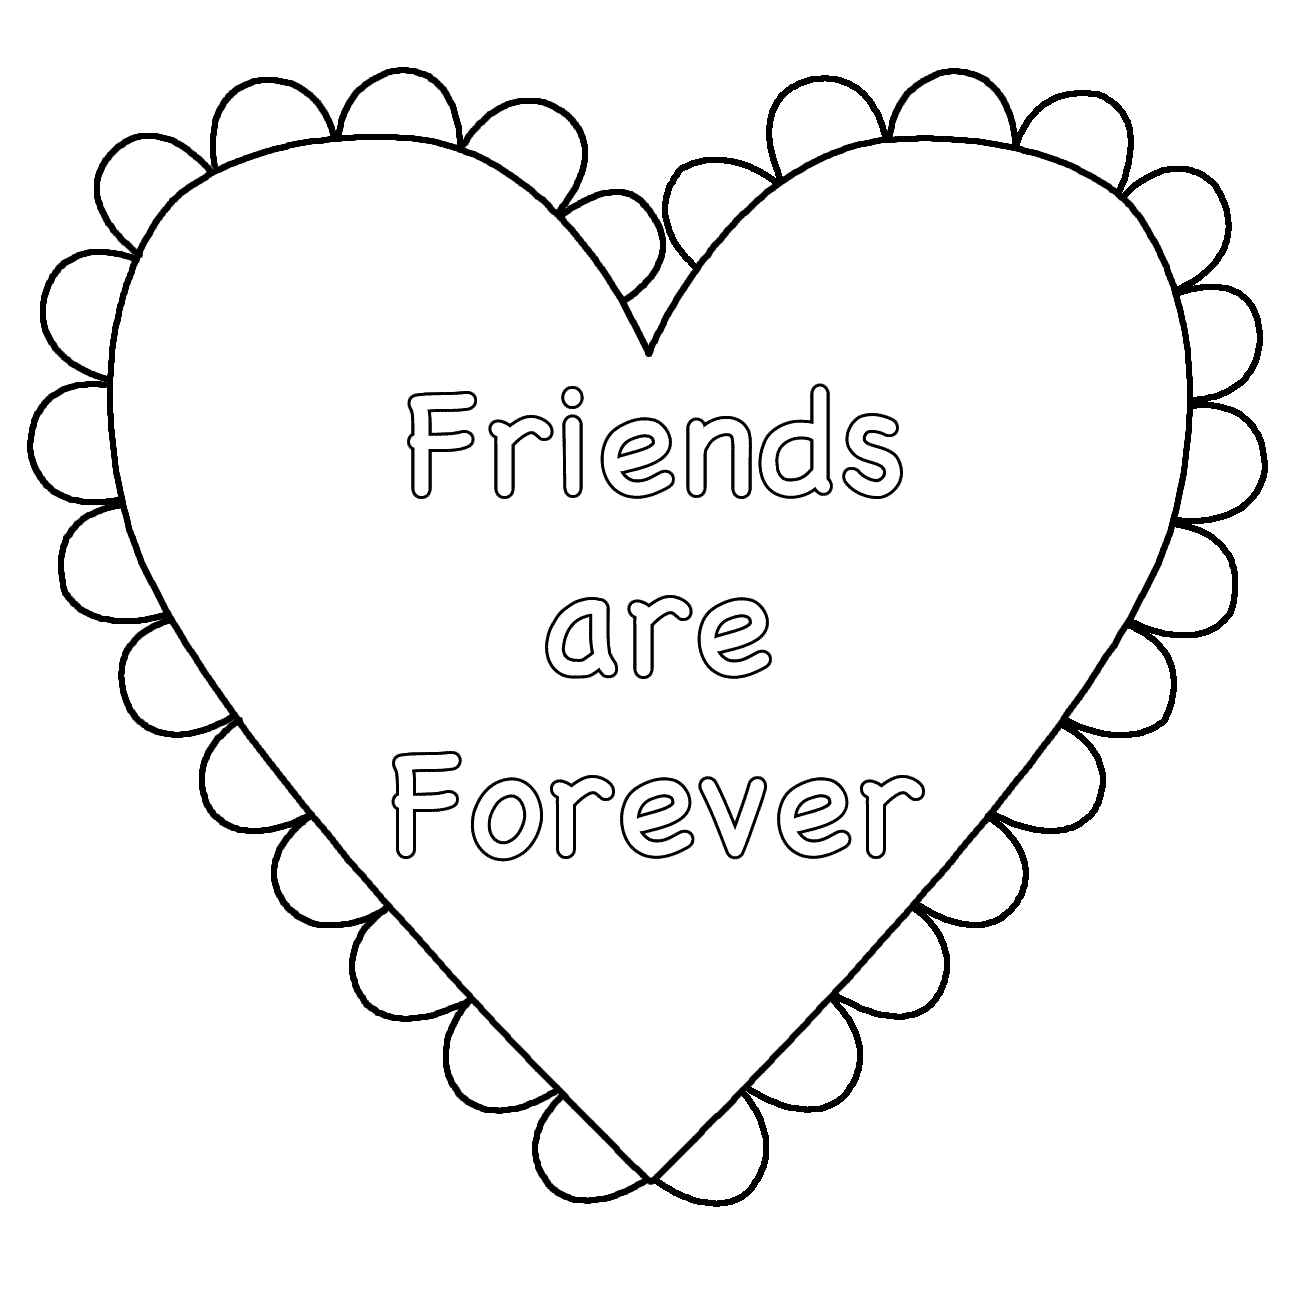 Valentine hearts coloring sheet s coloring page meg's color Best Friends Forever Symbols Precious Moments Friends Coloring Pages Best Friend Quotes